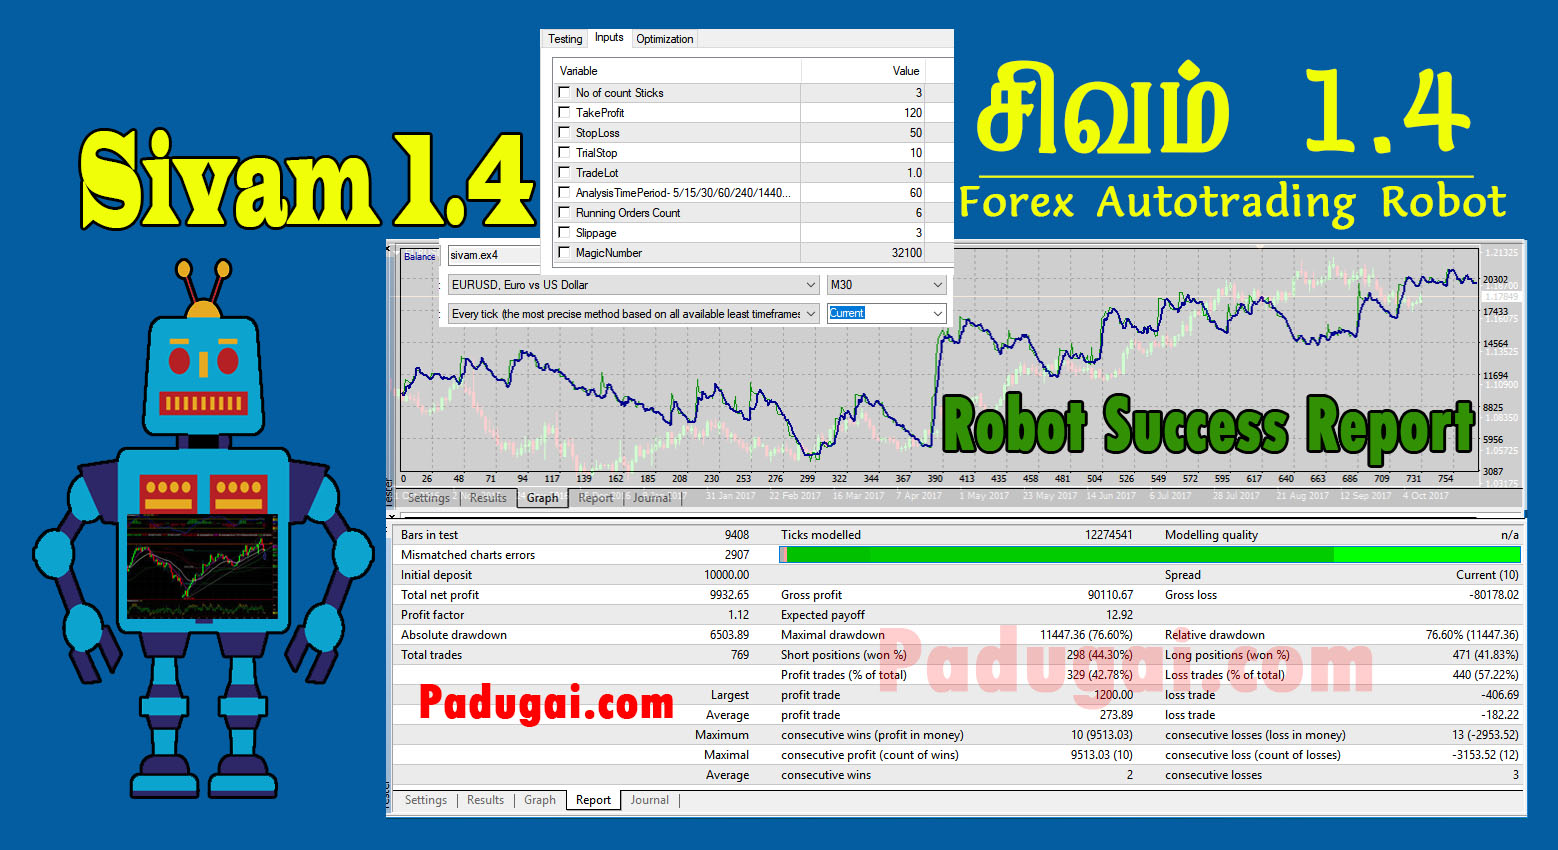 Forex Robot Free Download MT4, Sivam 1.4 Strategy Success Report